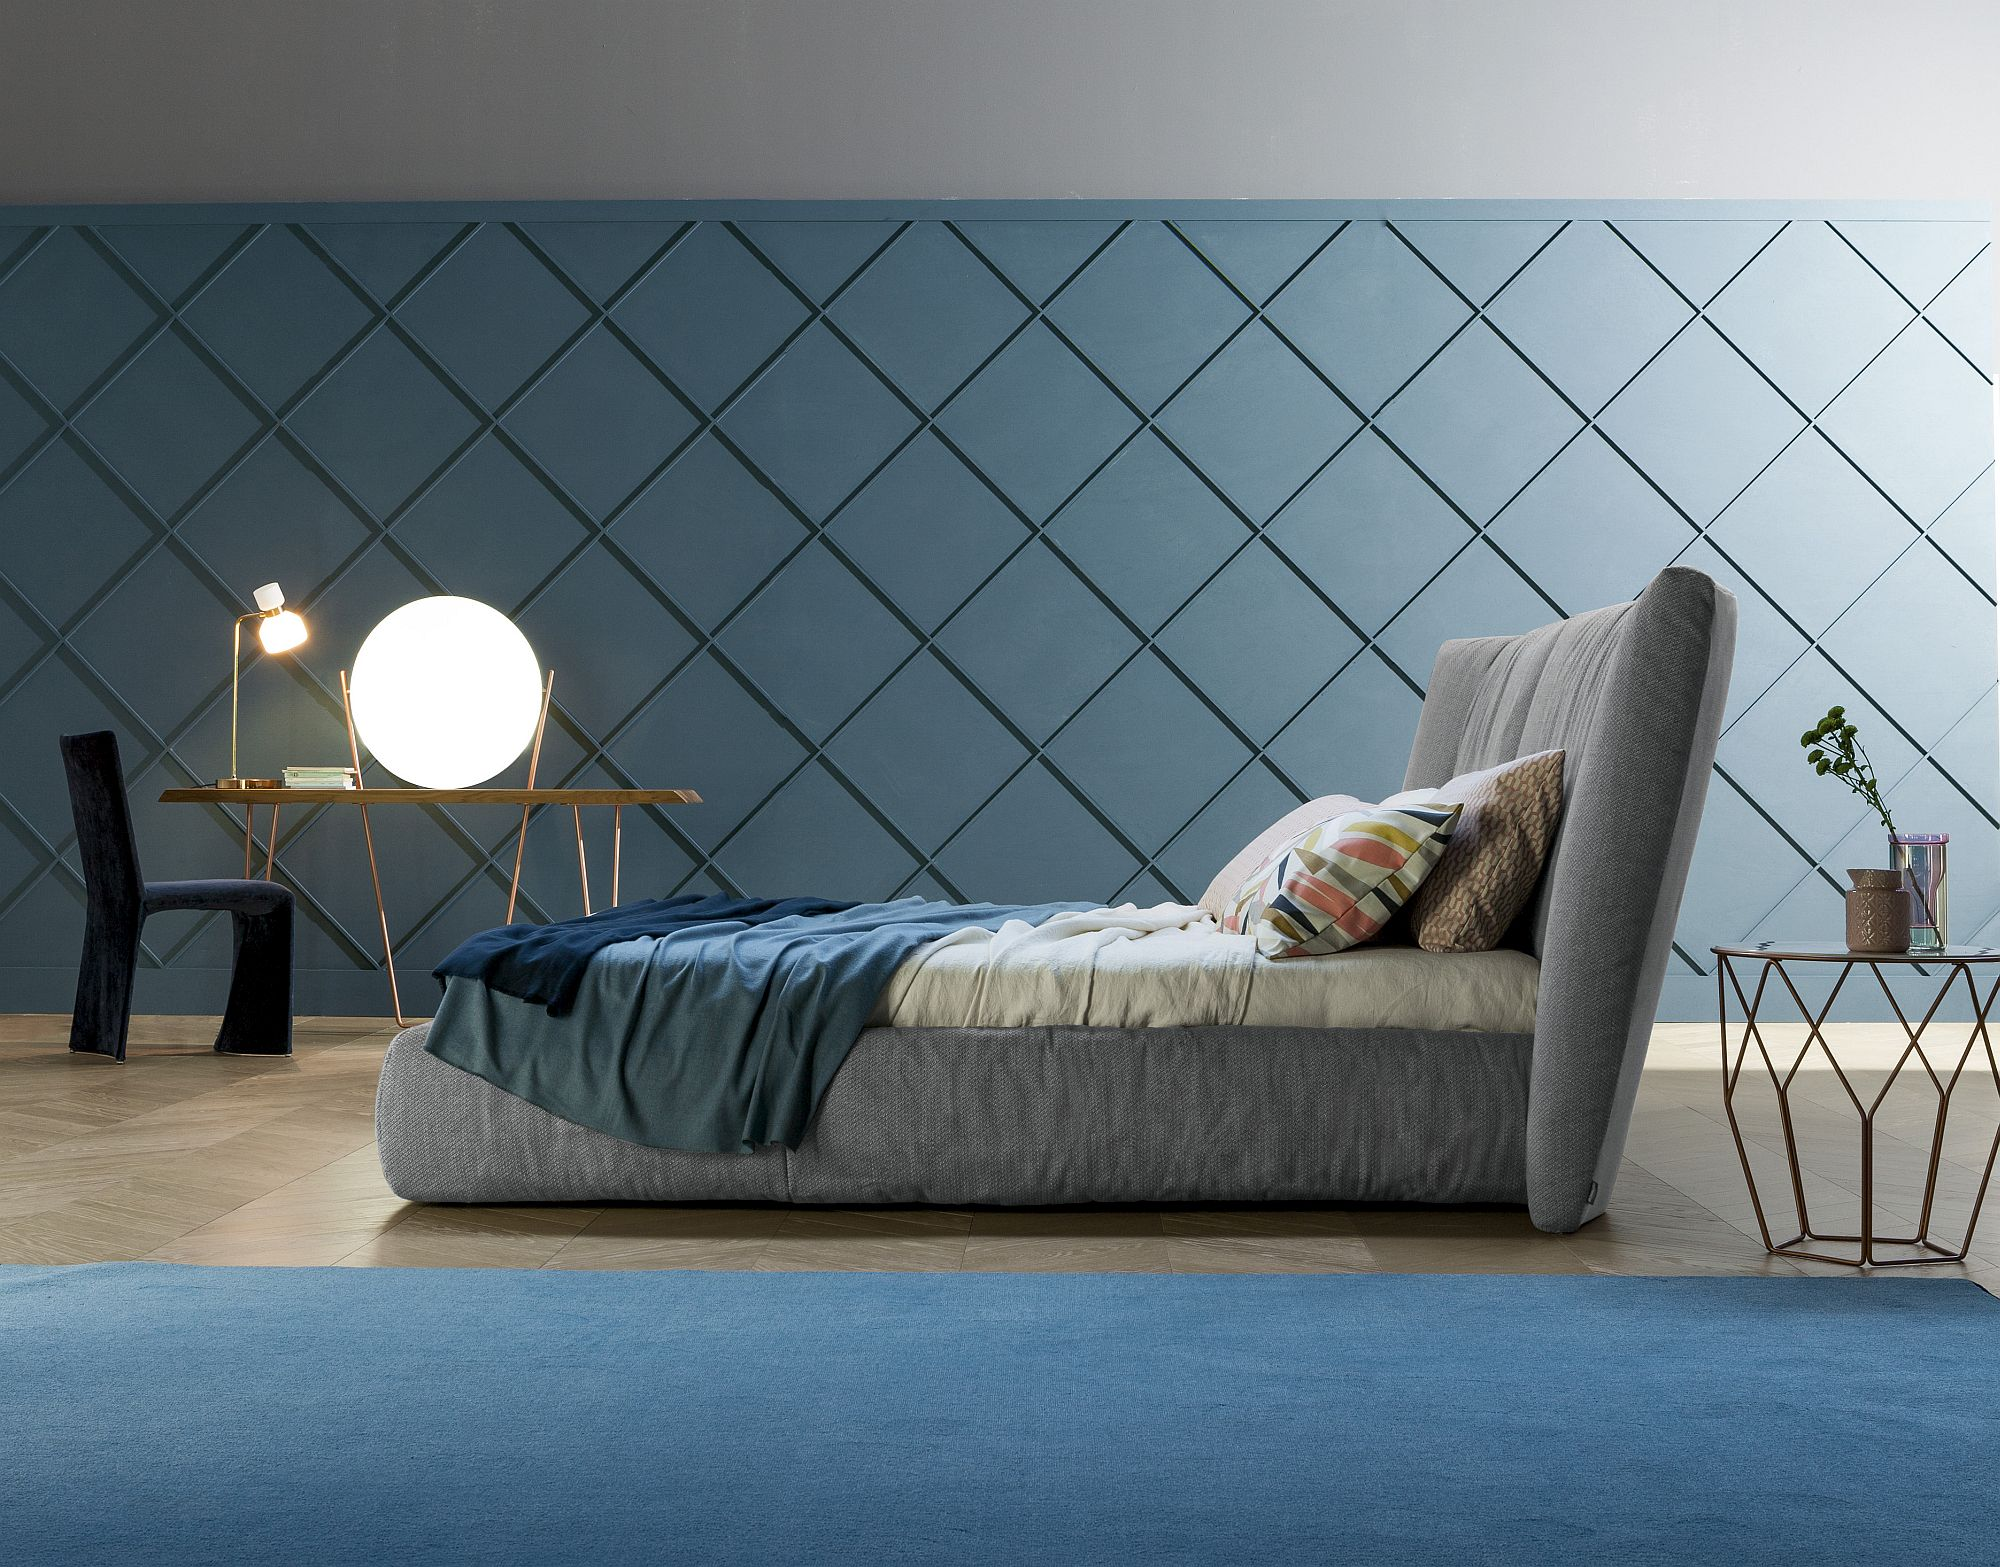 Thick padding of the headboard gives Youniverse an ultra-luxurious look